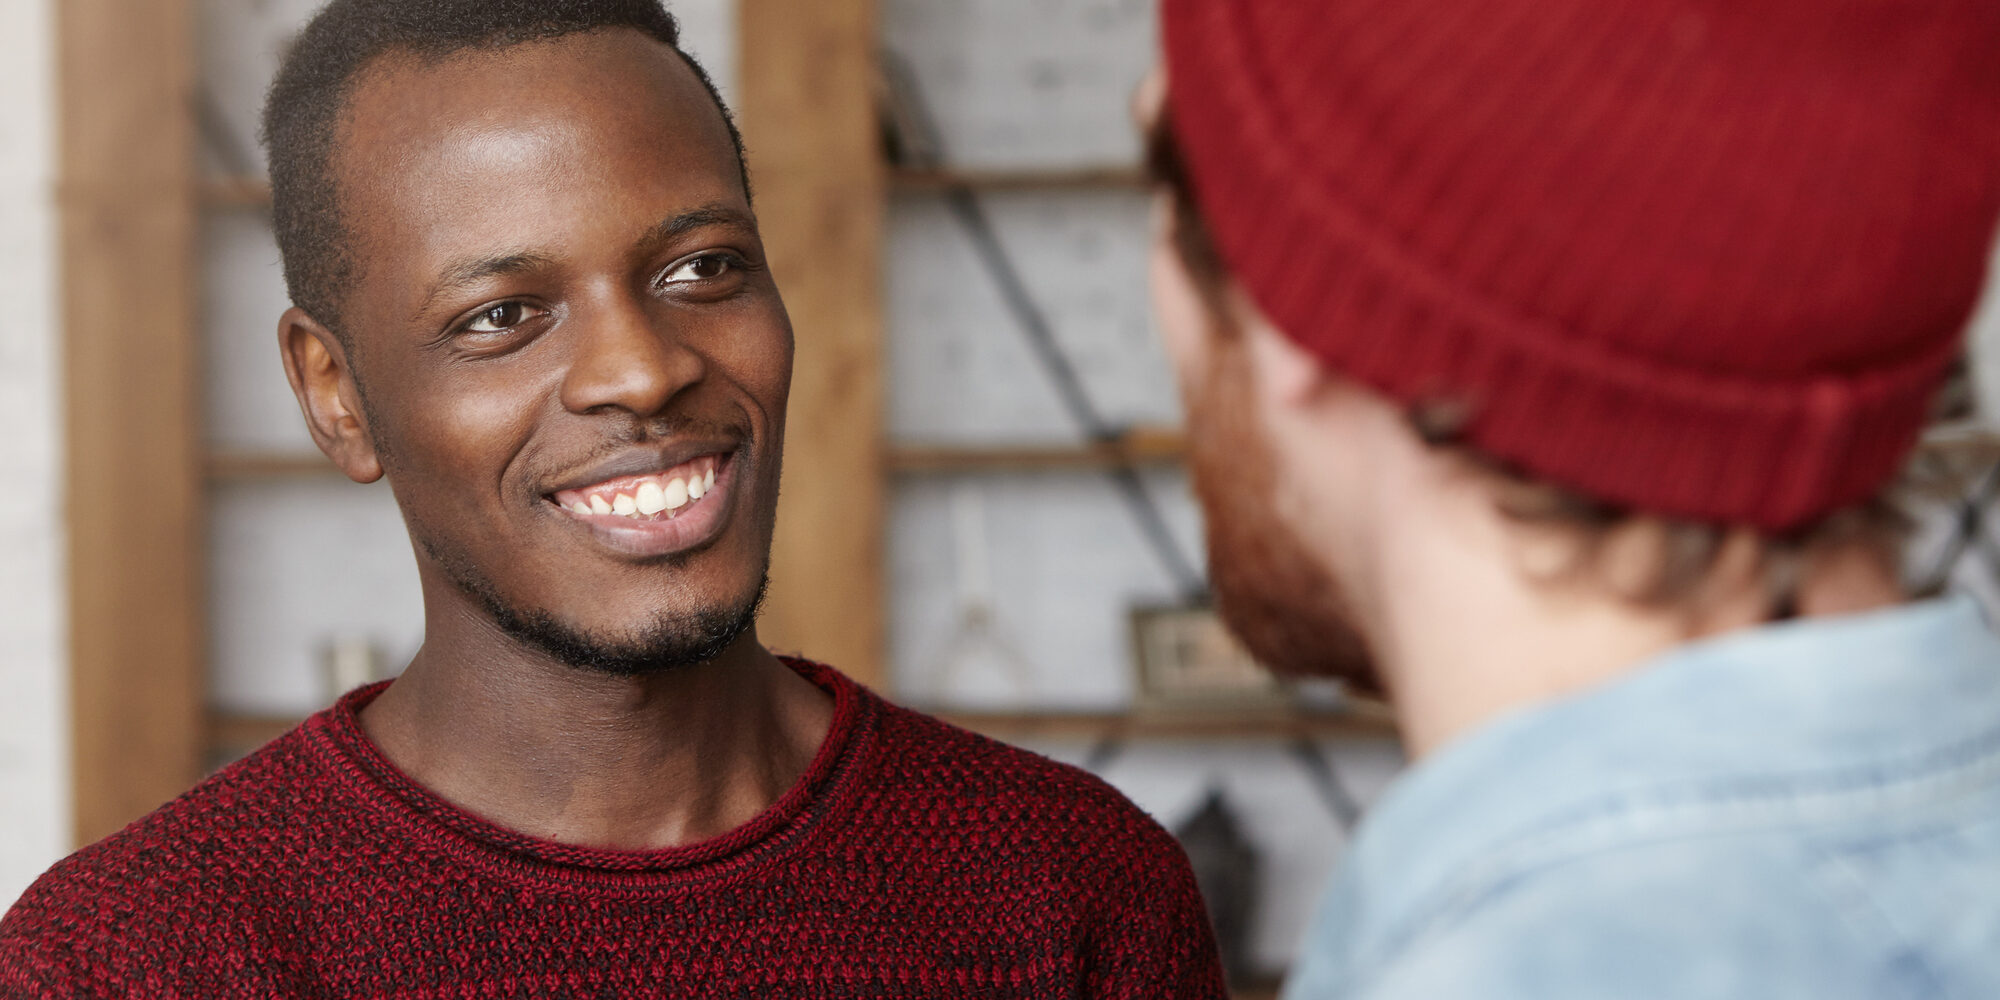 People, interracial friendship and communication concept. Handsome cheerful young Afro-American man dressed in cozy sweater smiling happily rejoicing at that his Caucasian friend got married